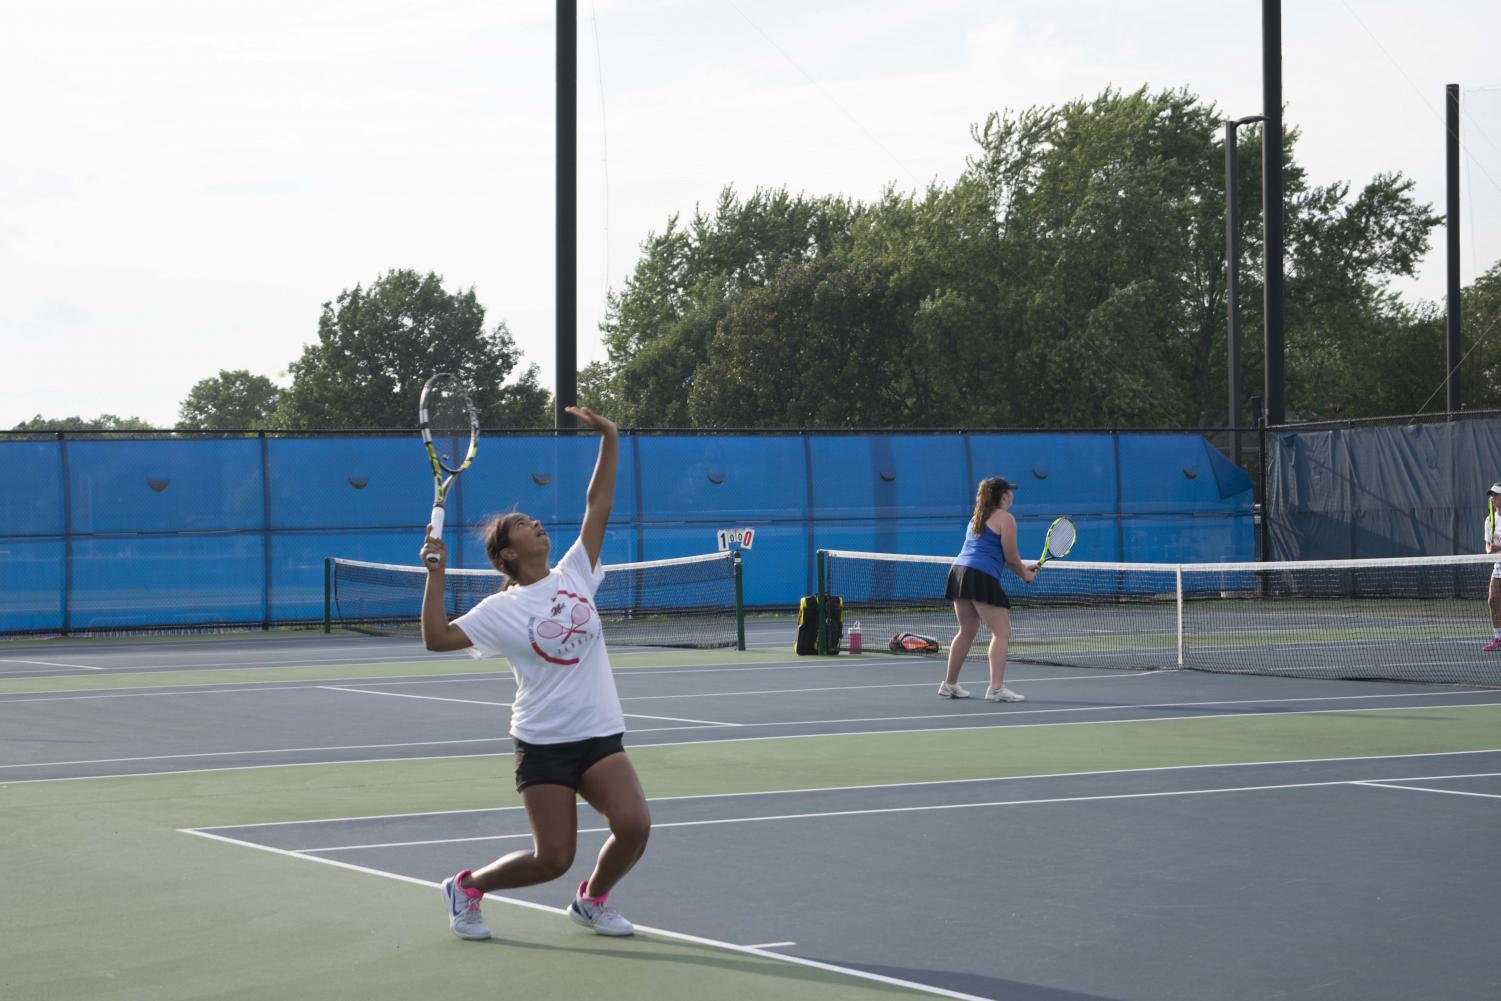 Prachi Shah, freshman, serves the ball in her singles match against her opponent at LT on Tuesday, Sept. 10.